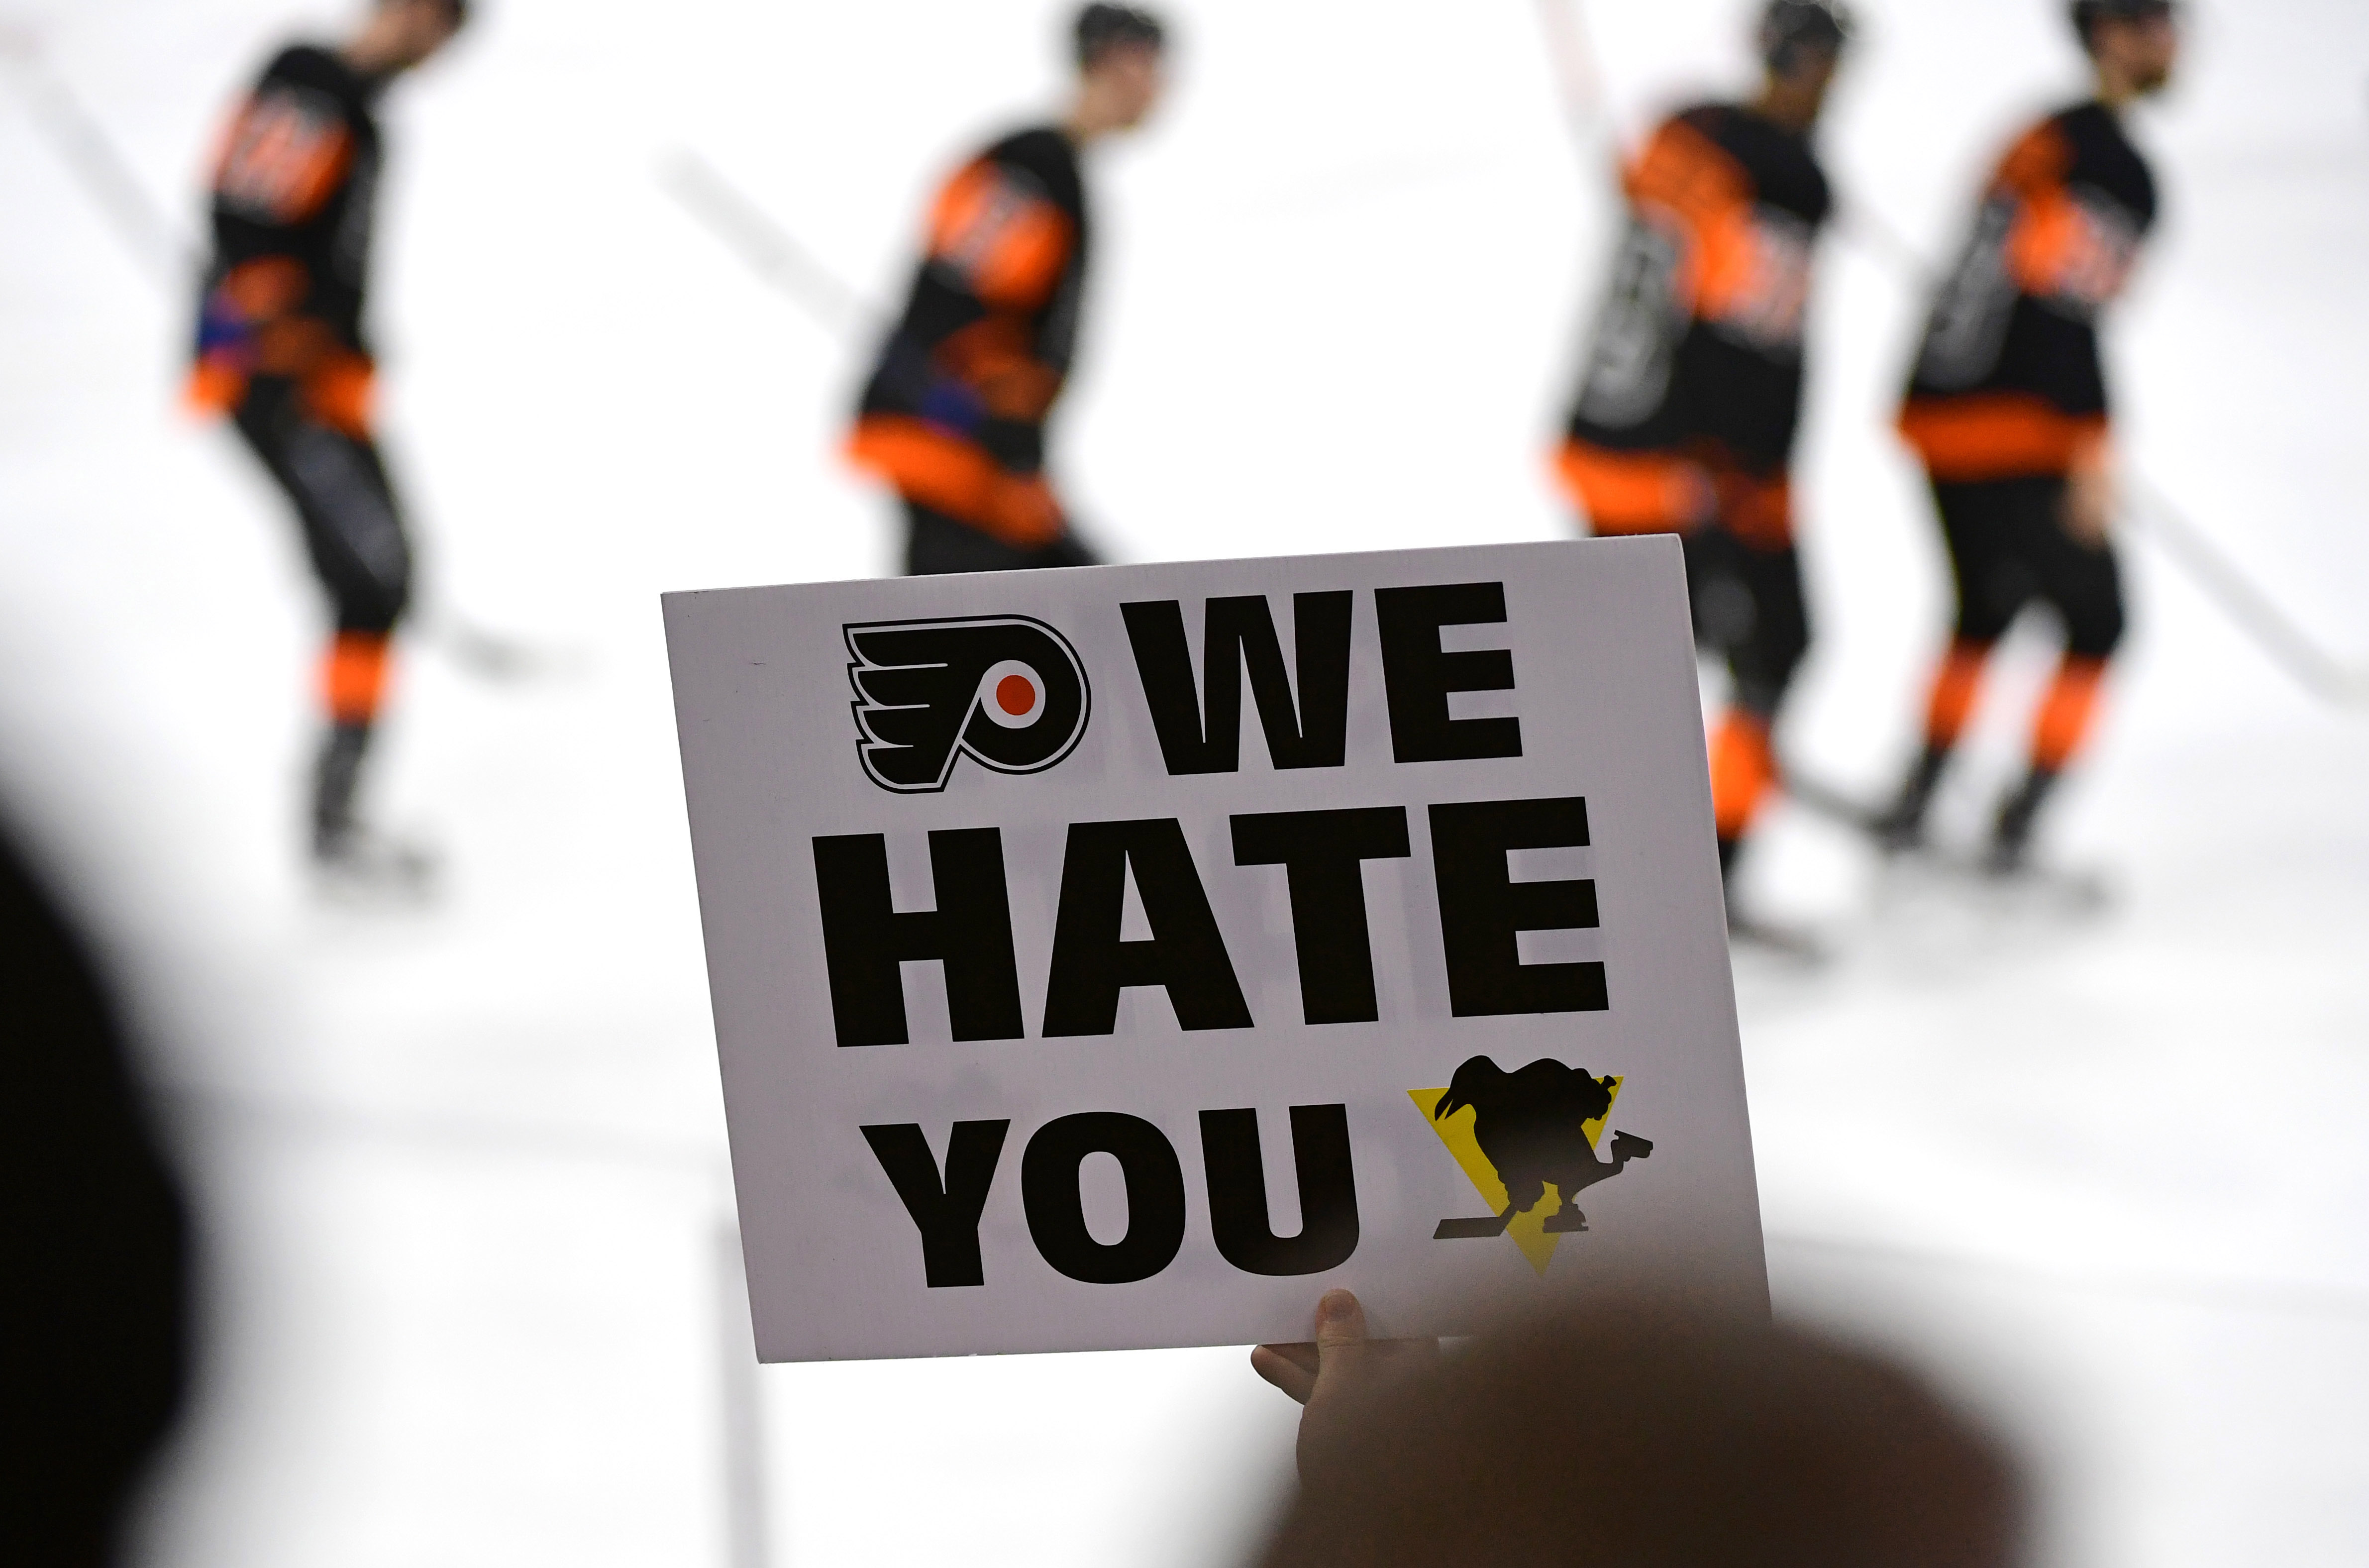 9945847-nhl-pittsburgh-penguins-at-philadelphia-flyers